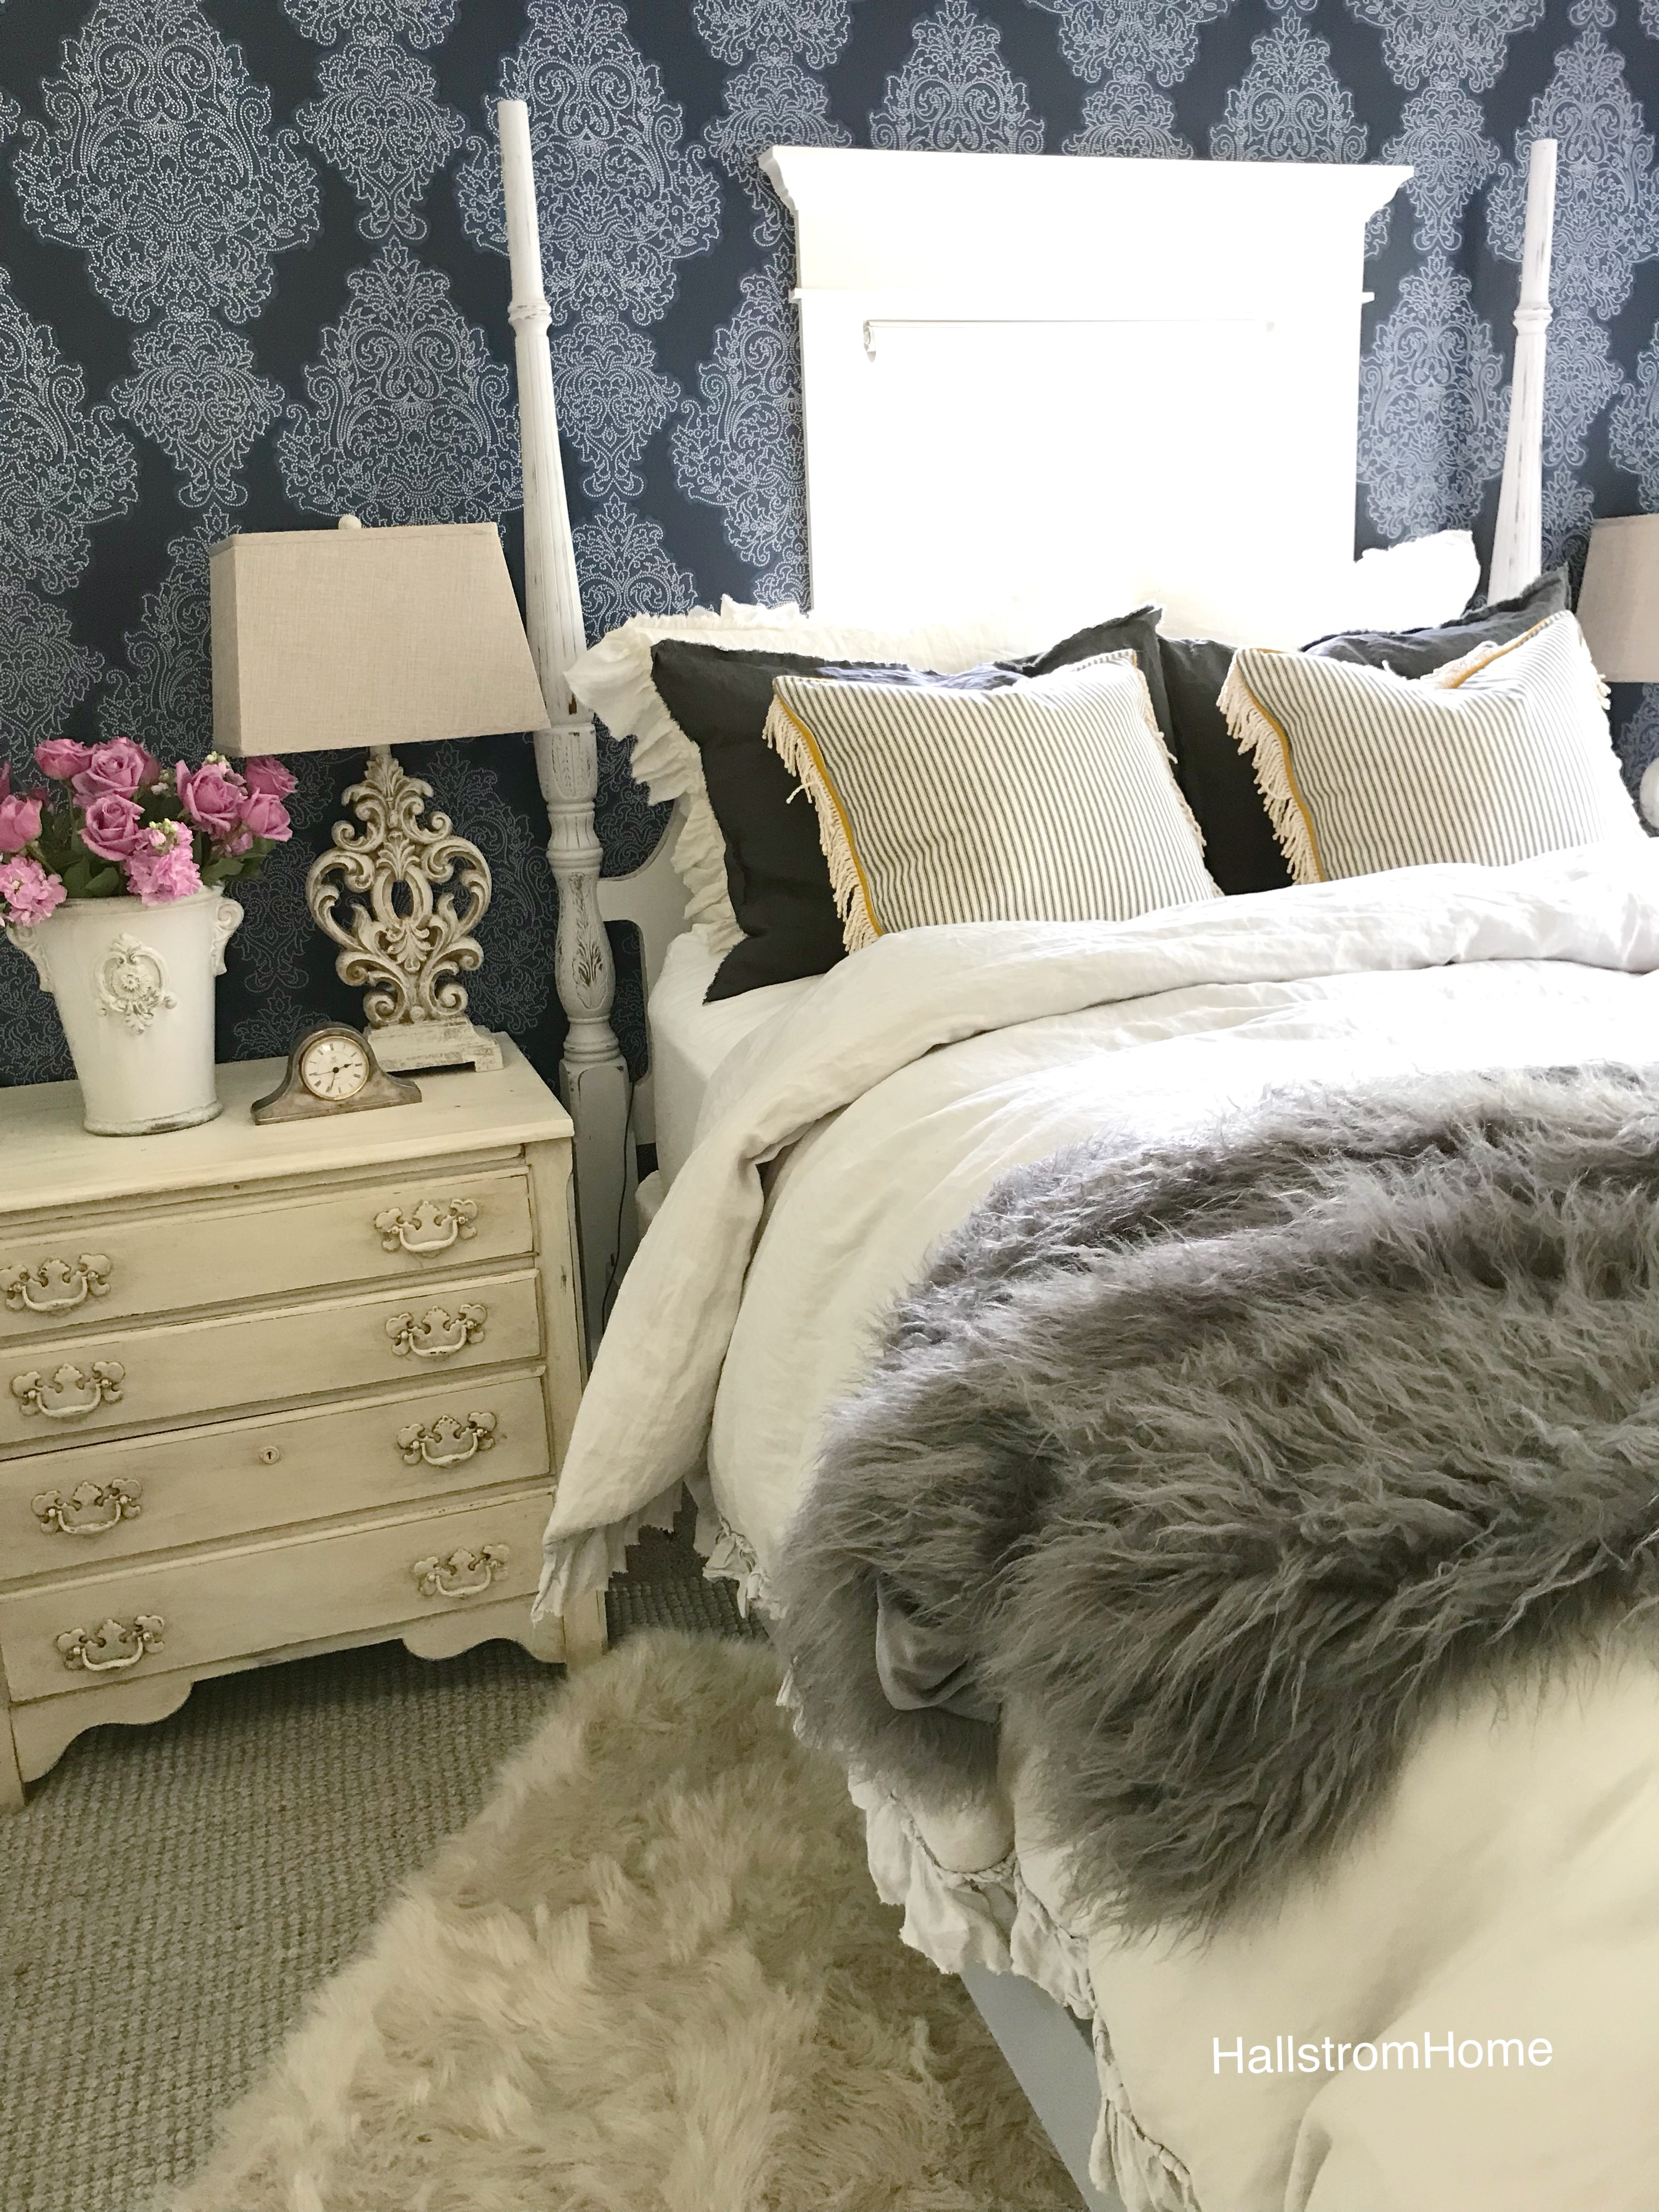 Tips for Hanging Bedroom Wallpaper Without Fighting